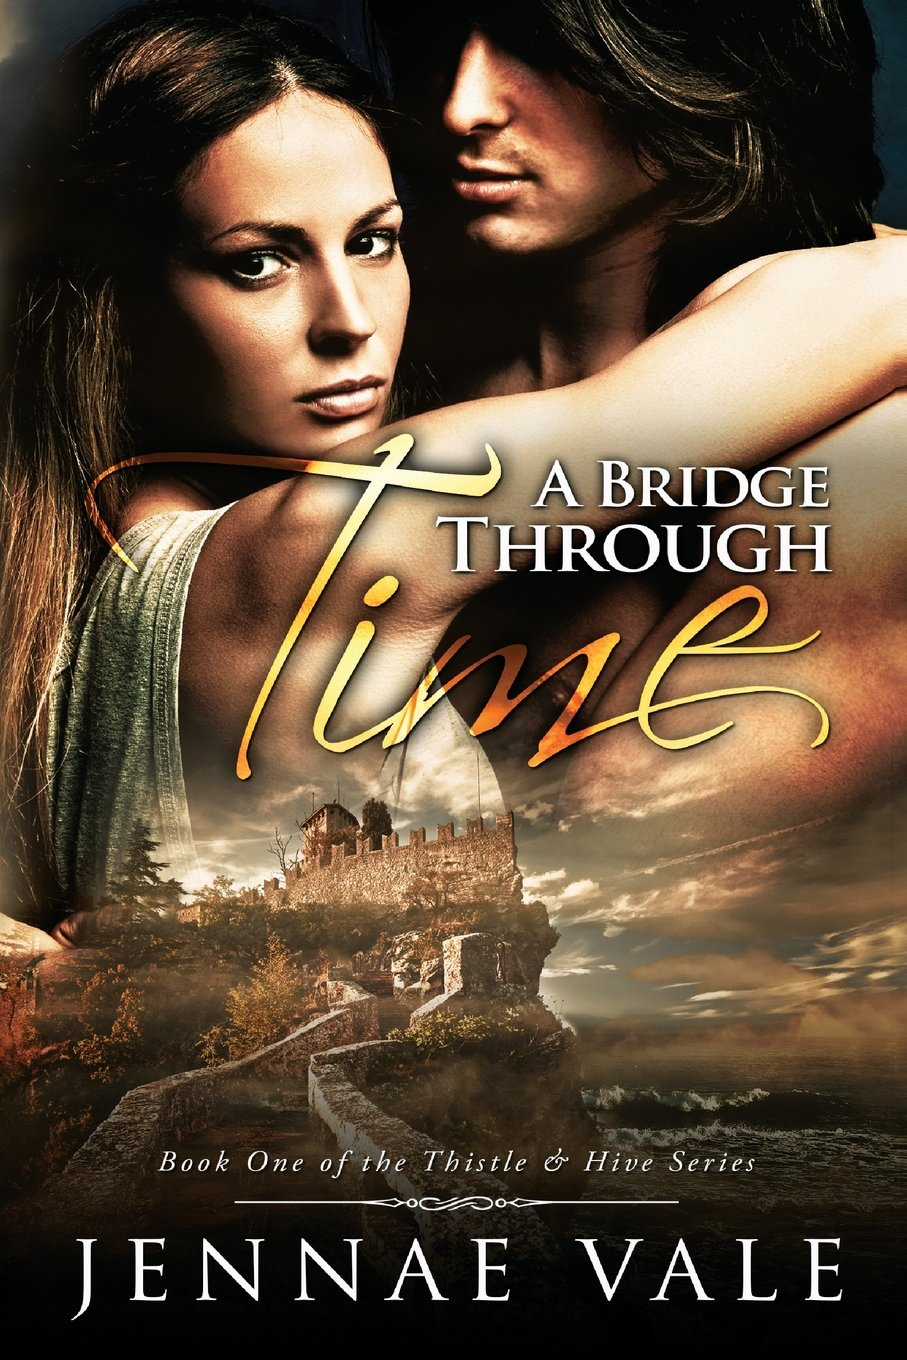 Historical/Time Travel Romance: 1st in the award-winning Thistle & Hive Series!